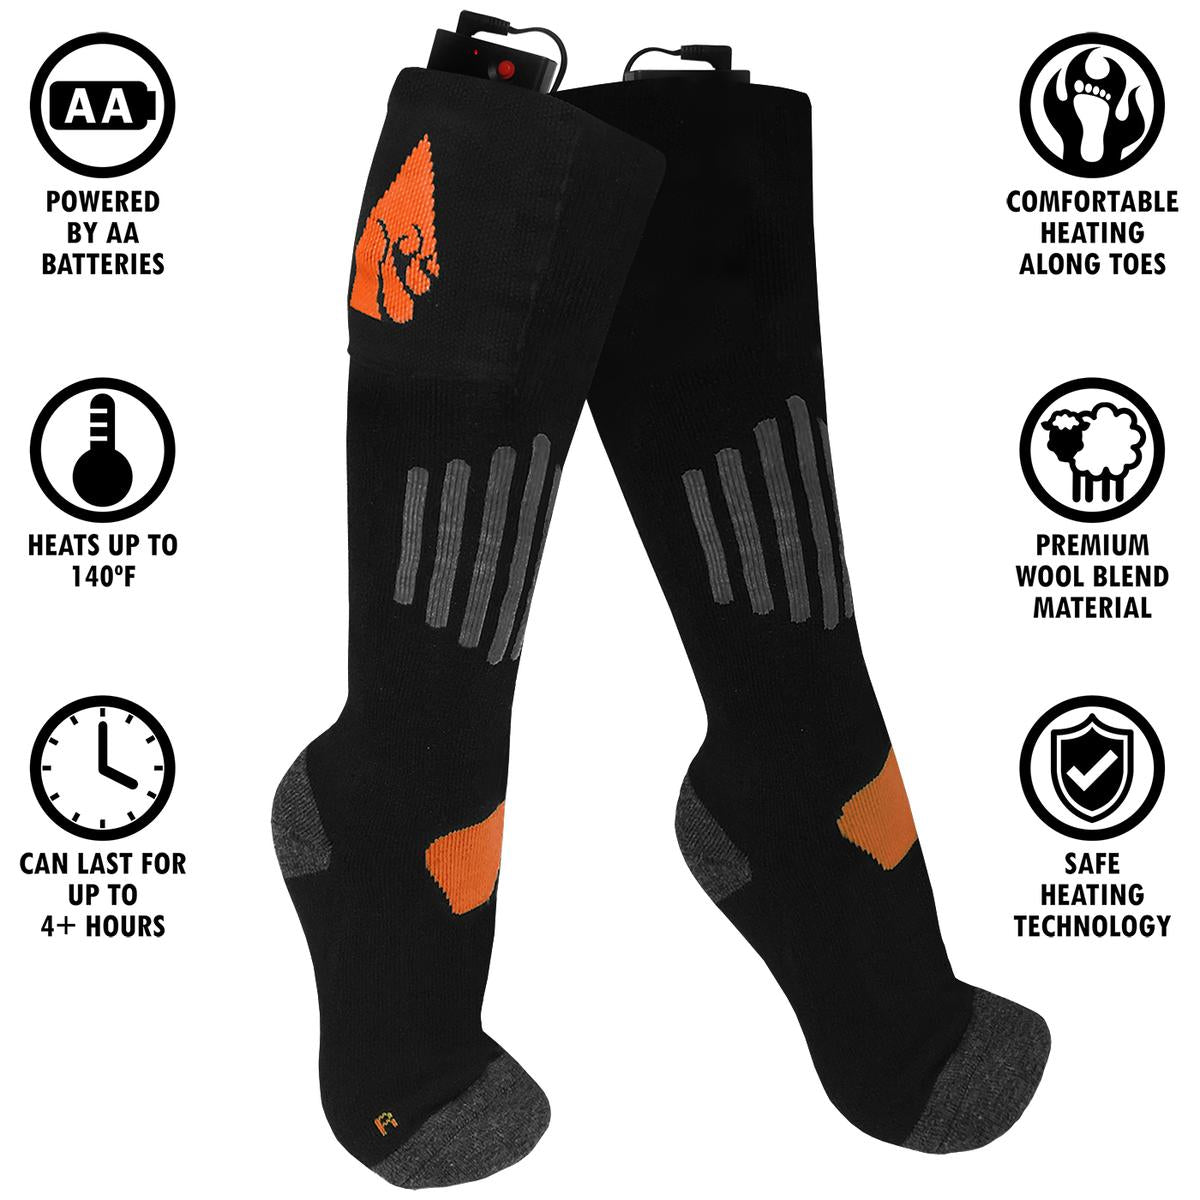 ActionHeat Wool AA Battery Heated Socks - Replacement Socks Only - Front